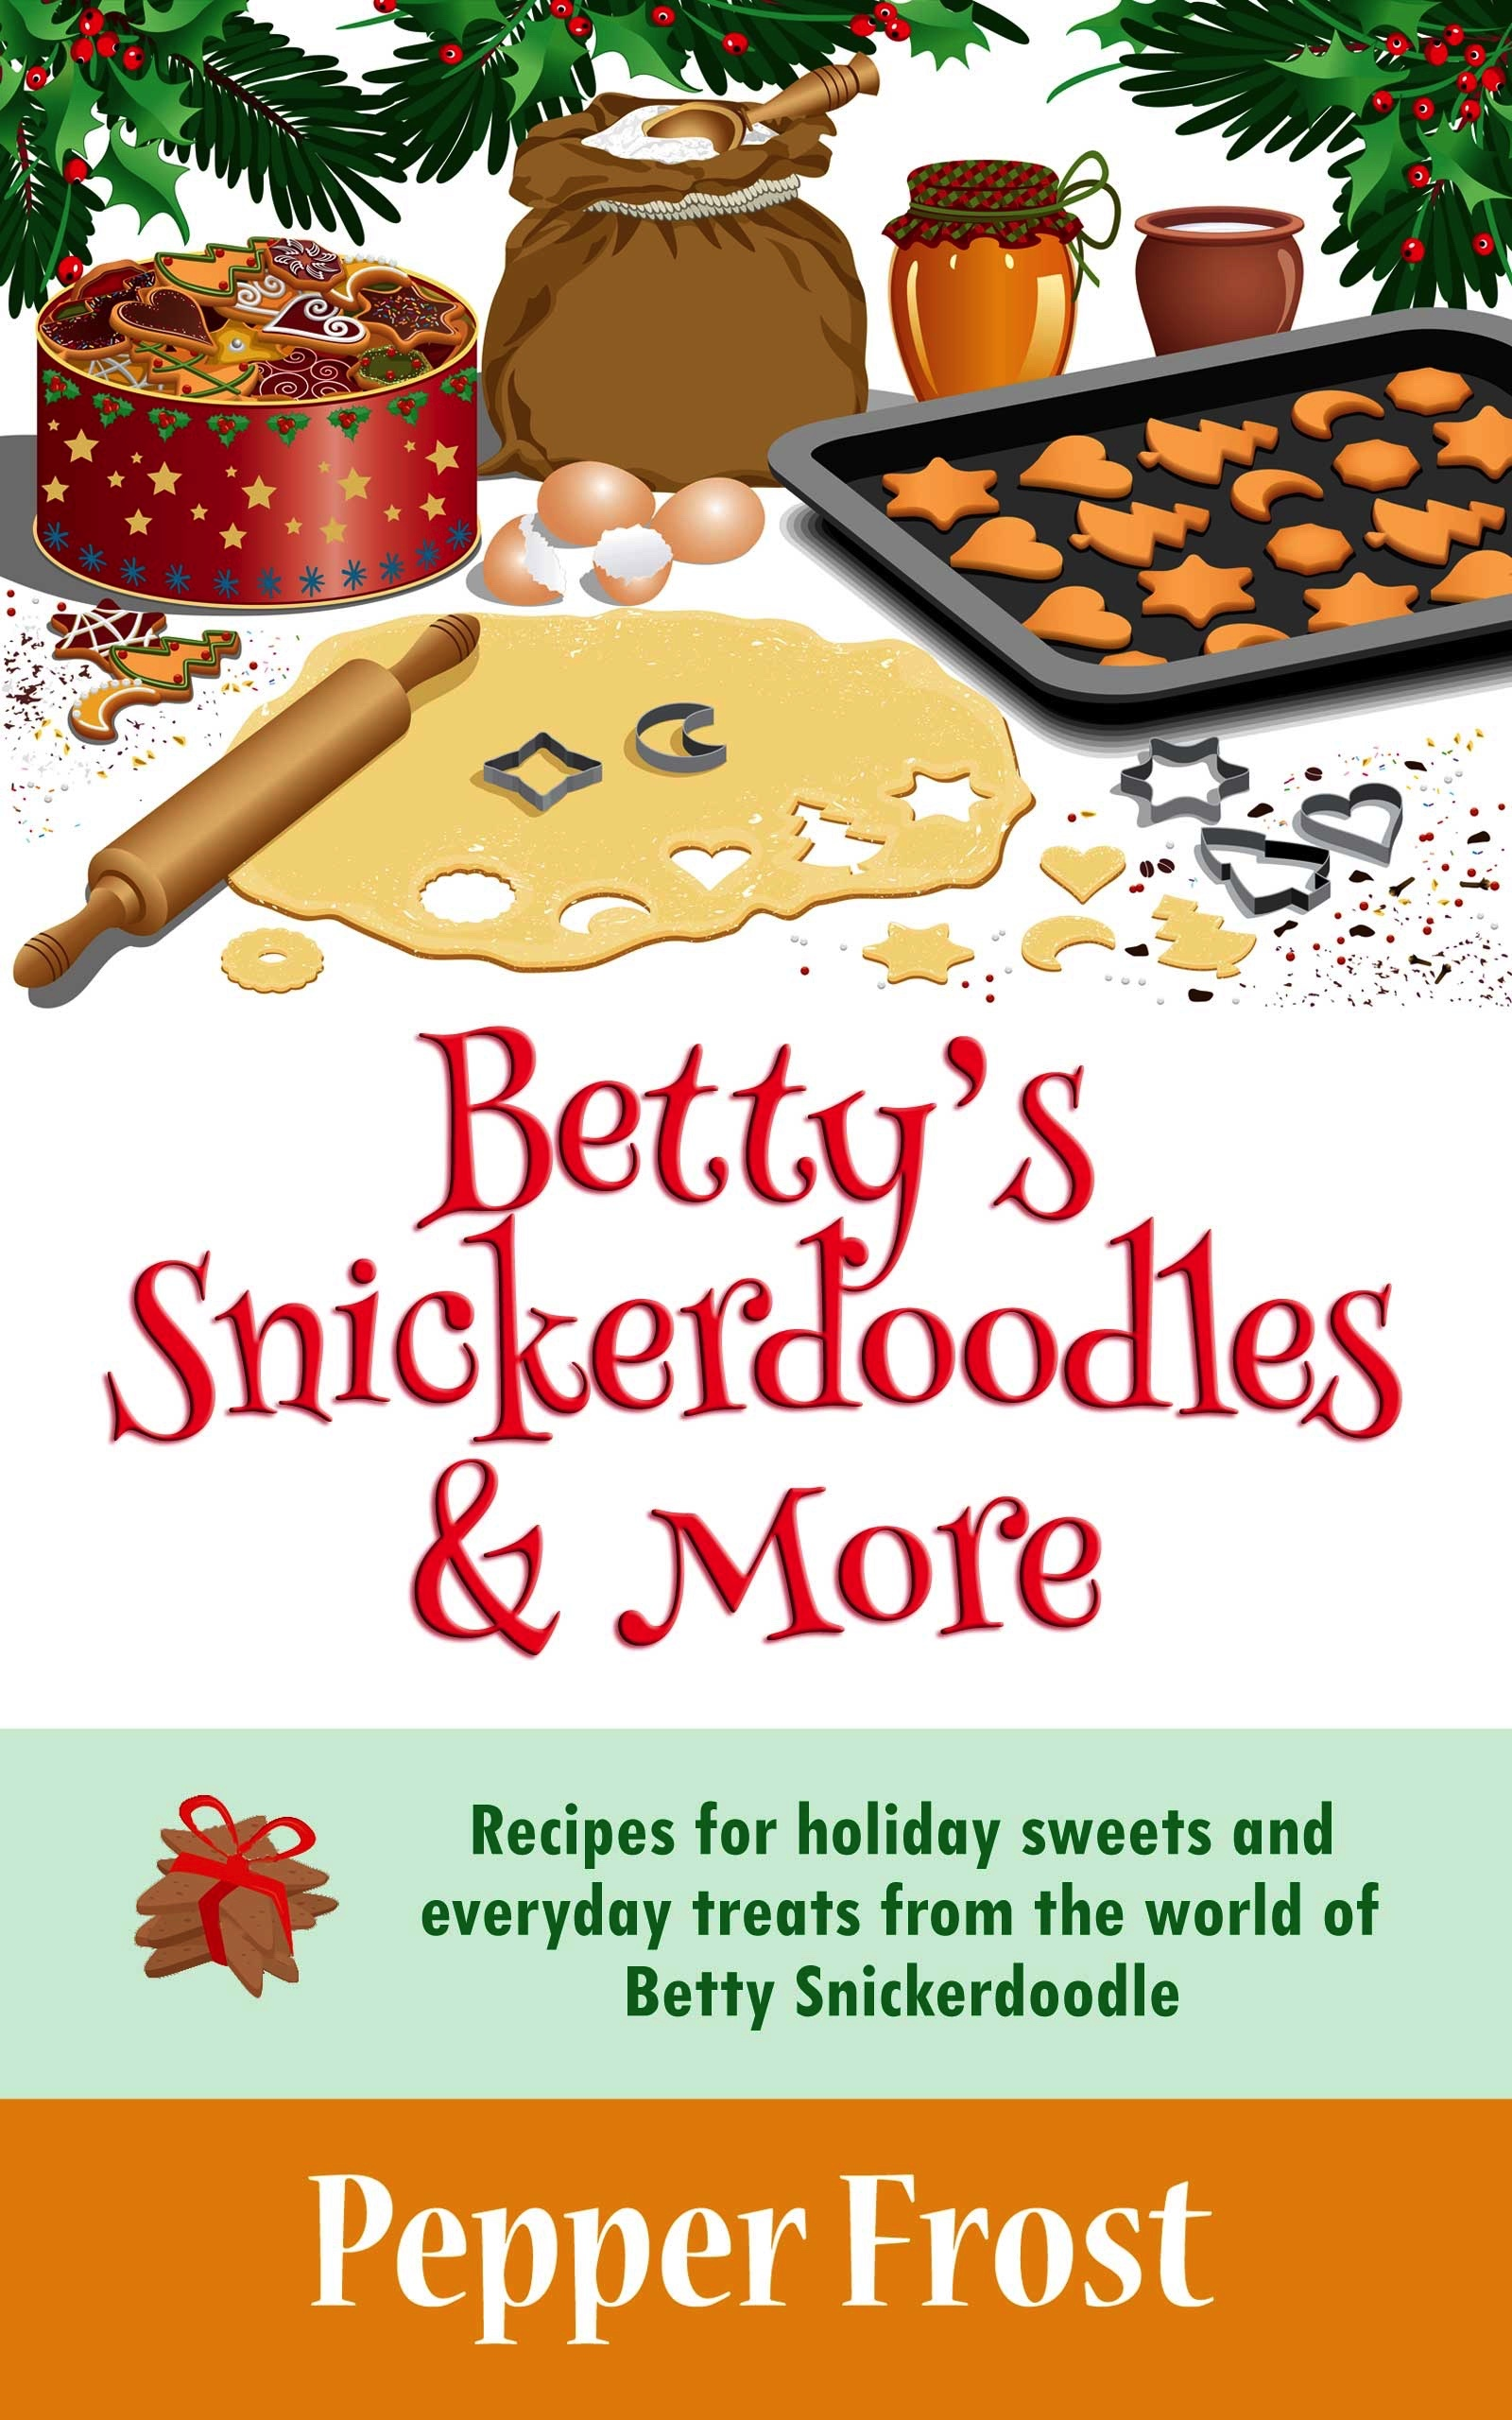 Bettys-Snickerdoodles-More-Kindle